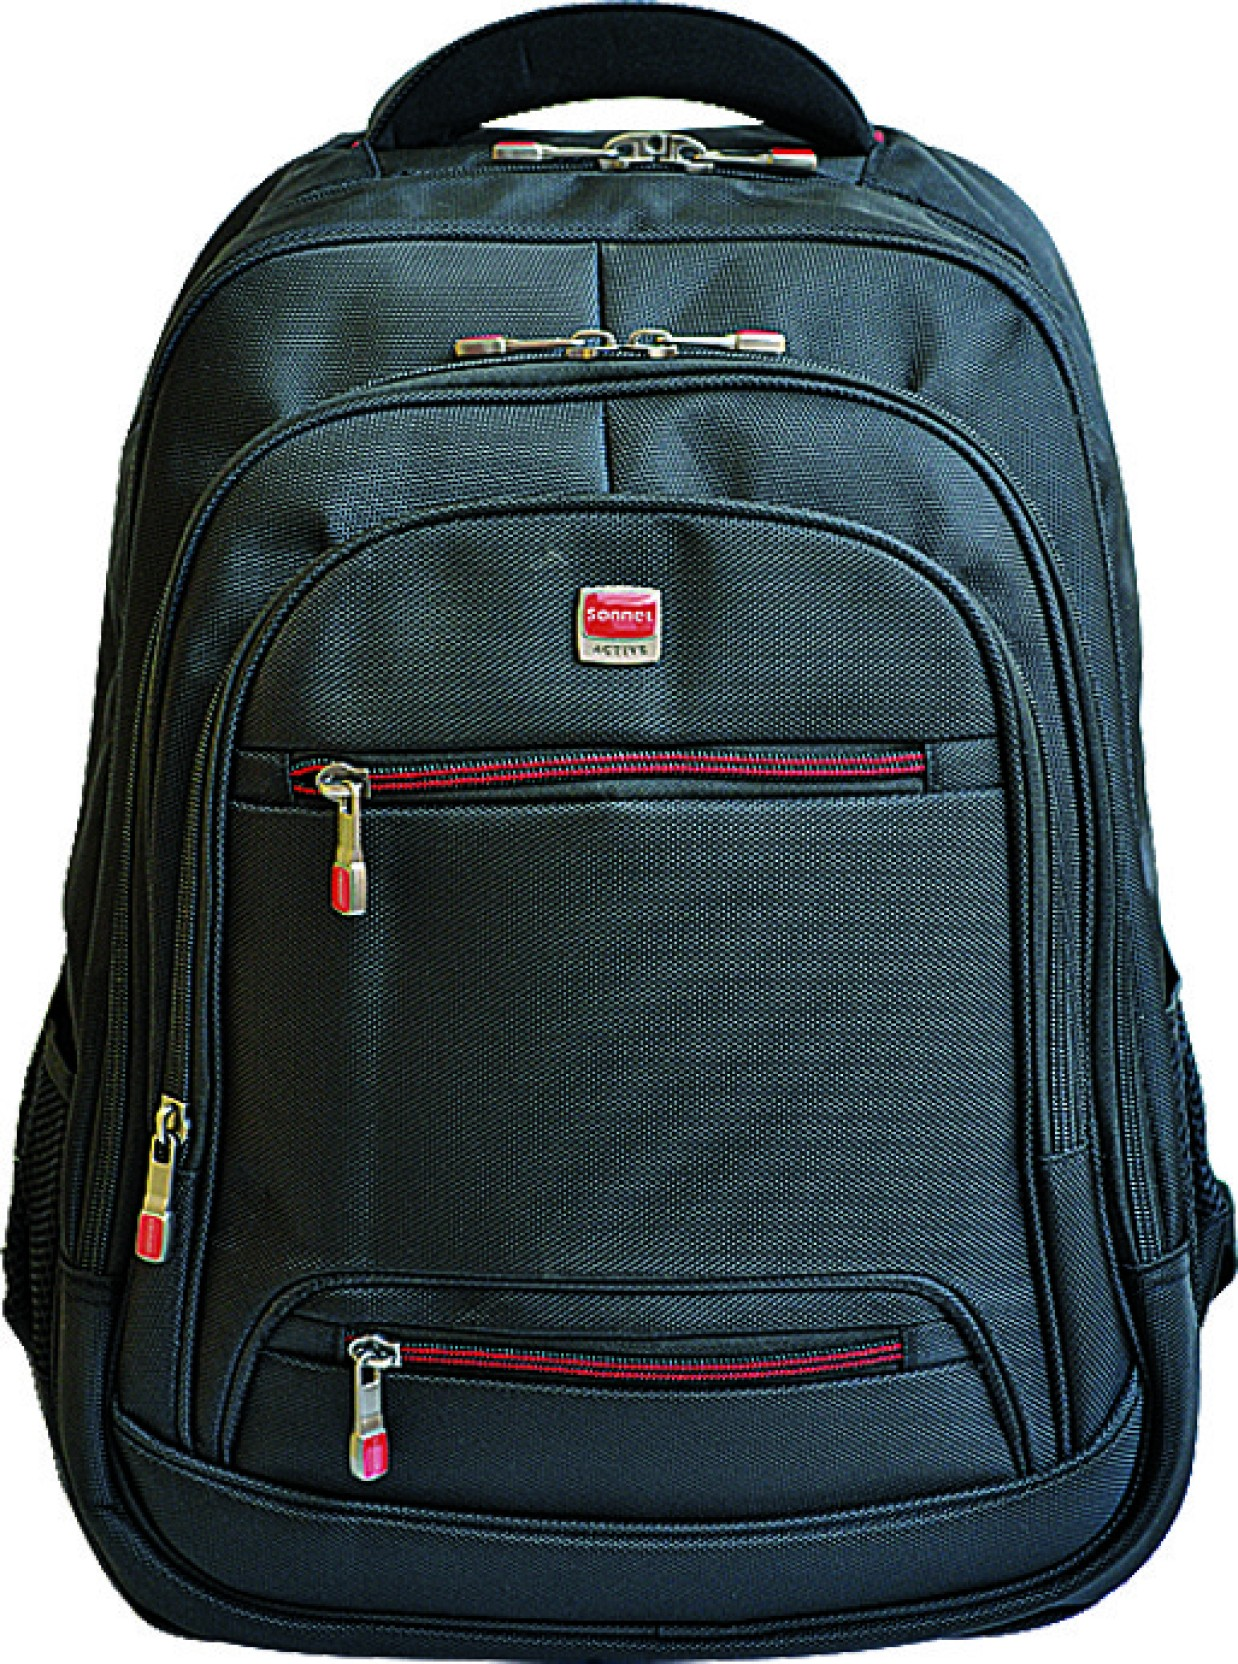 Lightweight Laptop Bags In India- Fenix Toulouse Handball 1f90b0259a11a